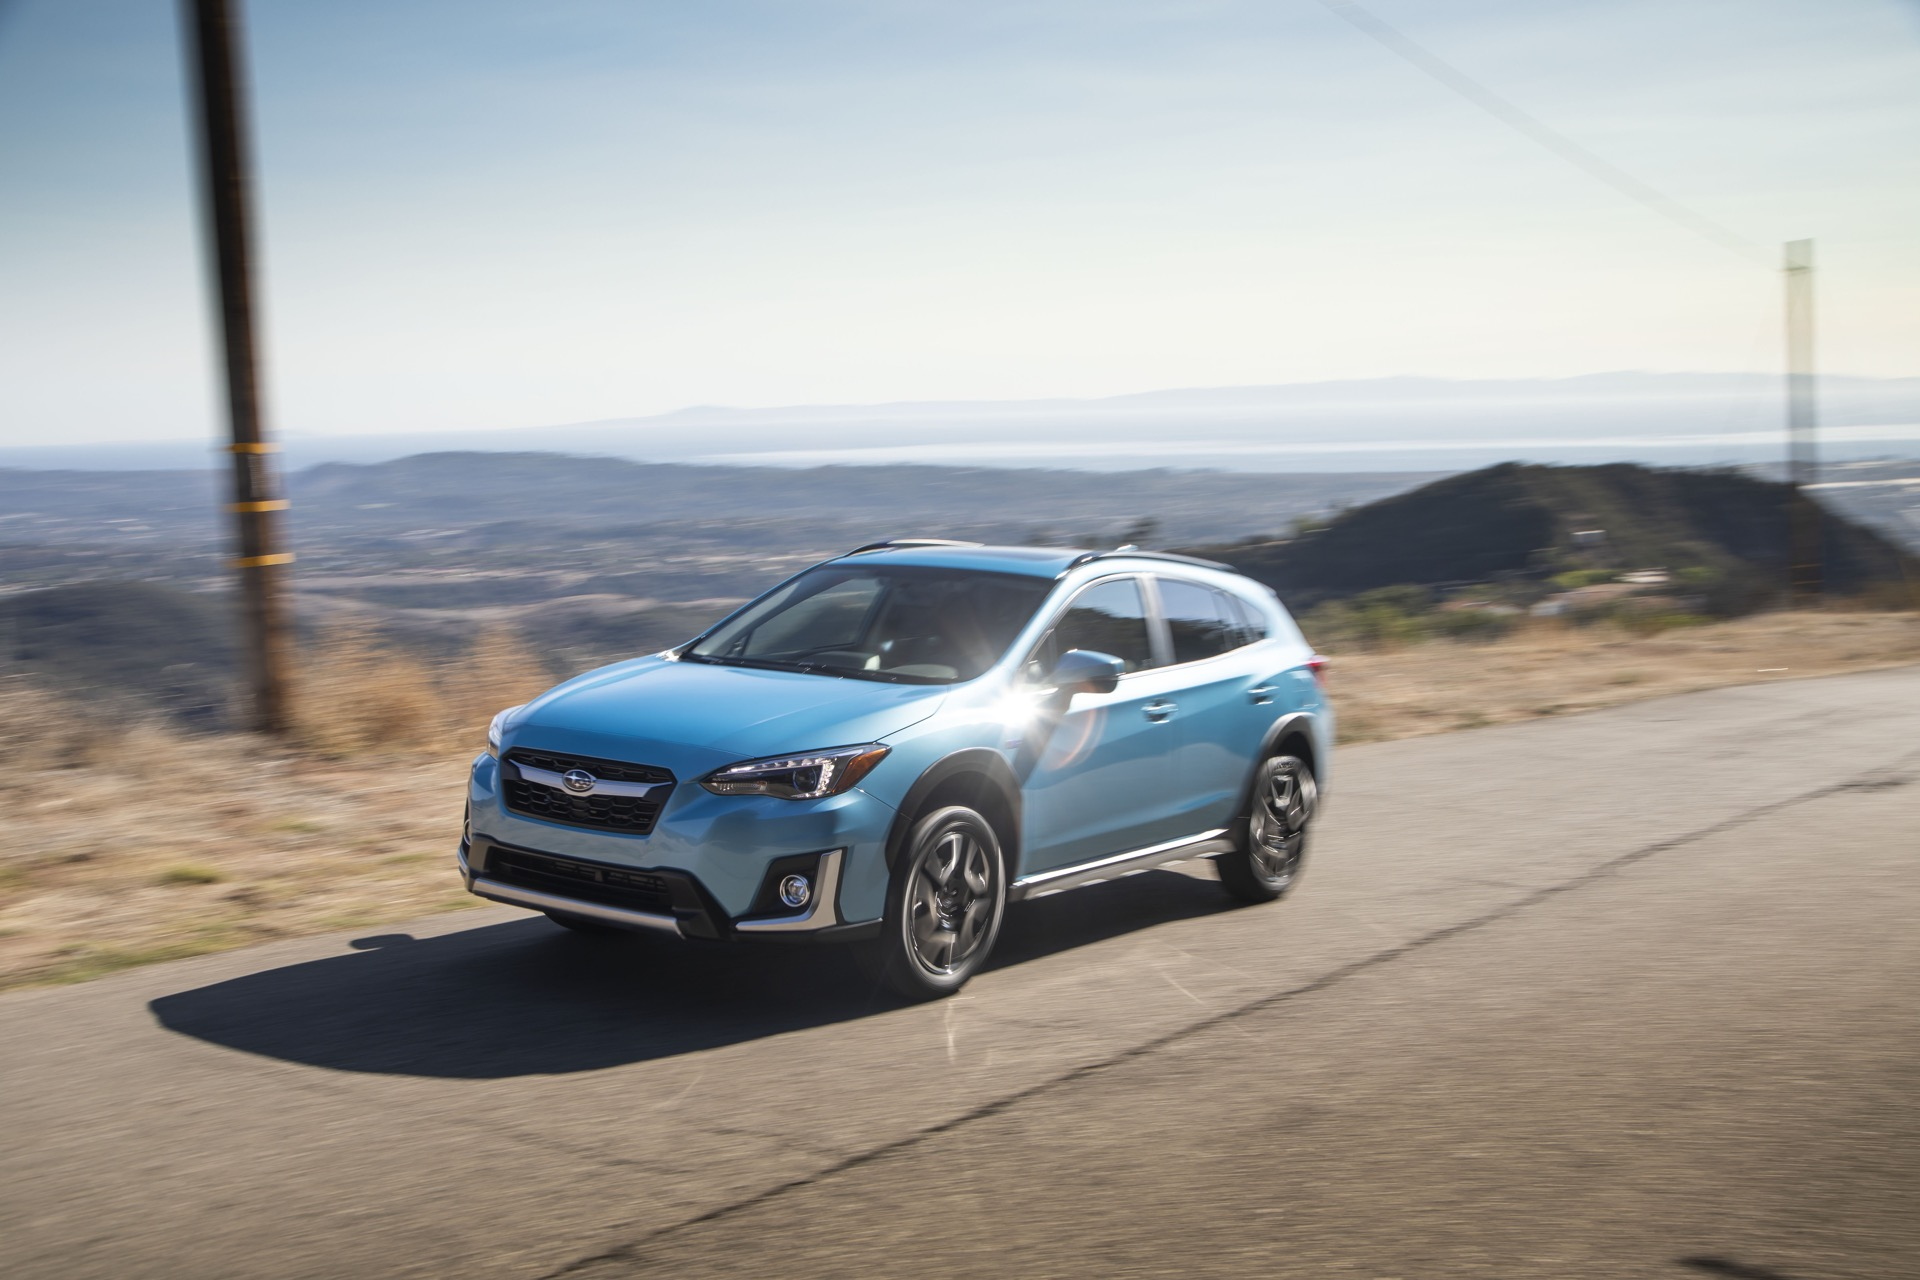 Plug-in Subaru, Toyota hybrids, changes at the top: The Week in Reverse